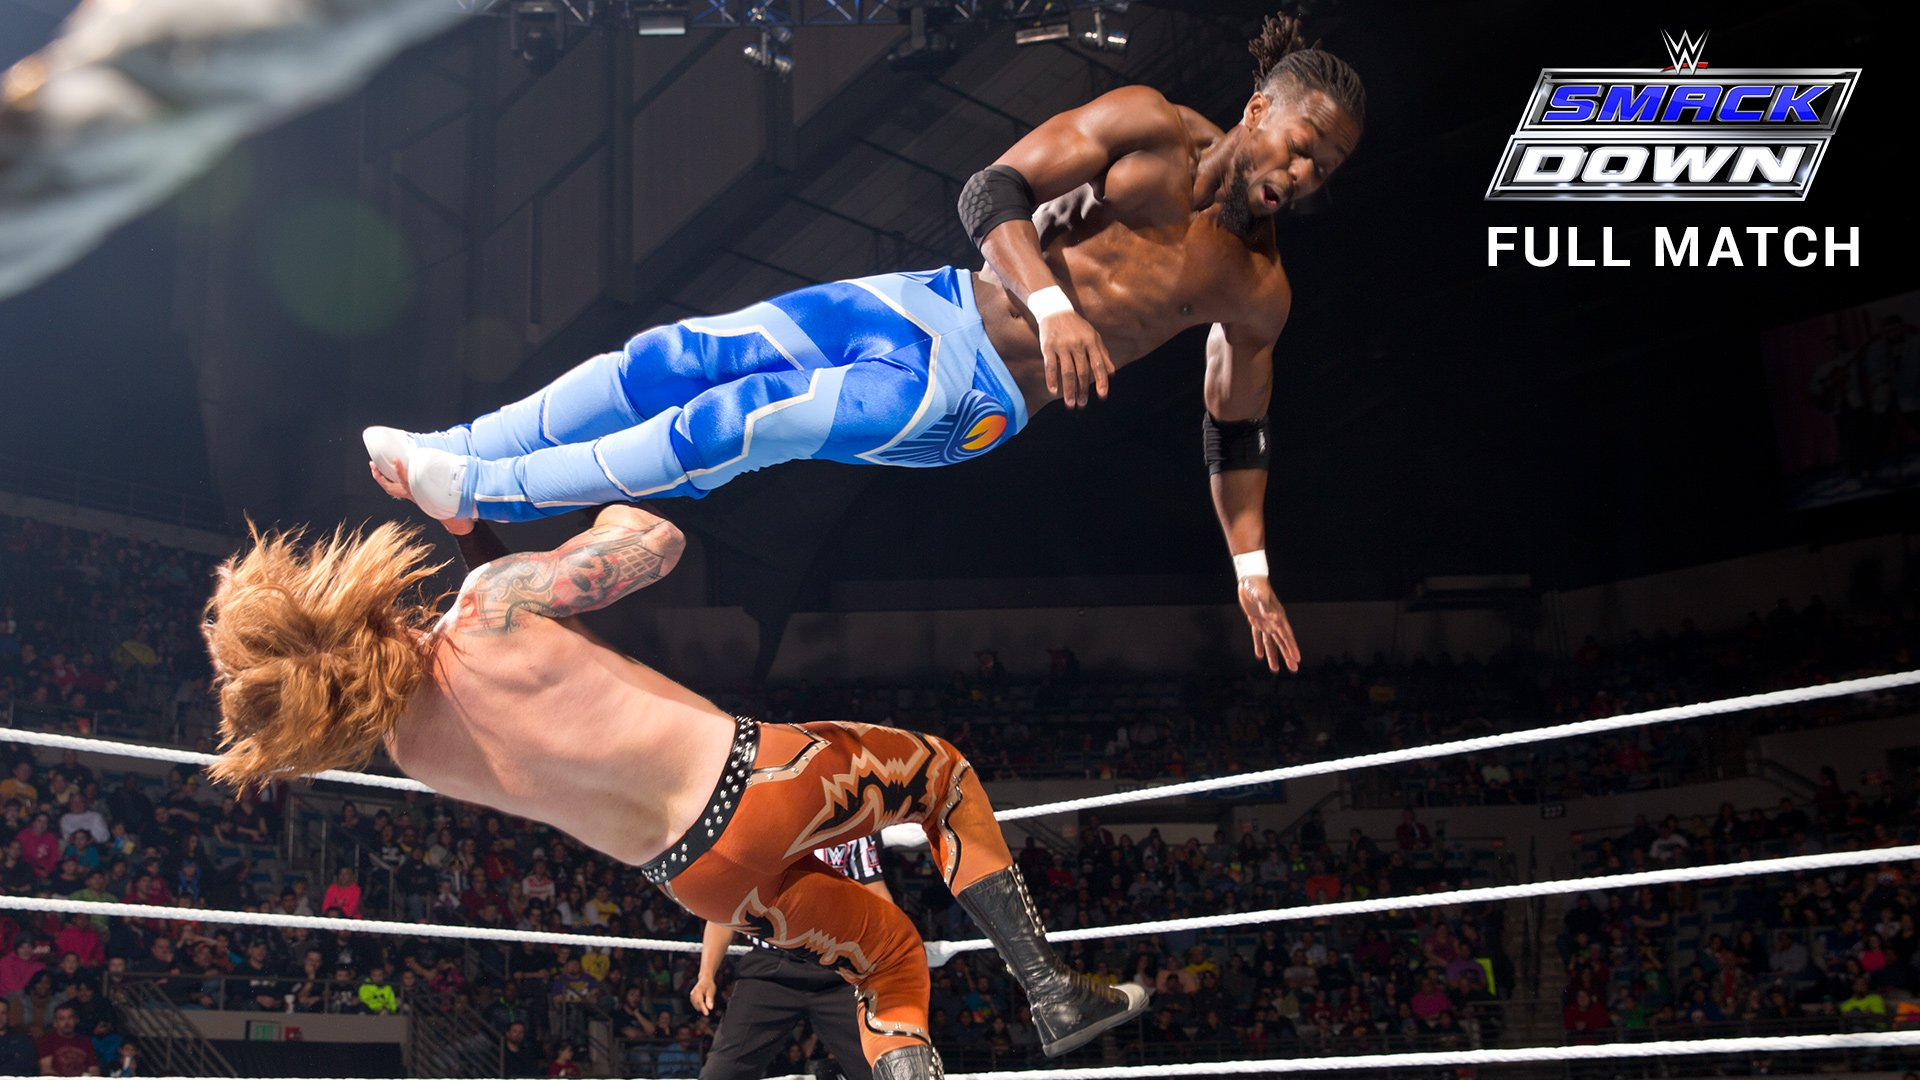 The New Day vs. Heath Slater, Titus O'Neil & Curtis Axel: SmackDown, 28 Novembre 2014 (Match Intégral - Exclusivité WWE Network)